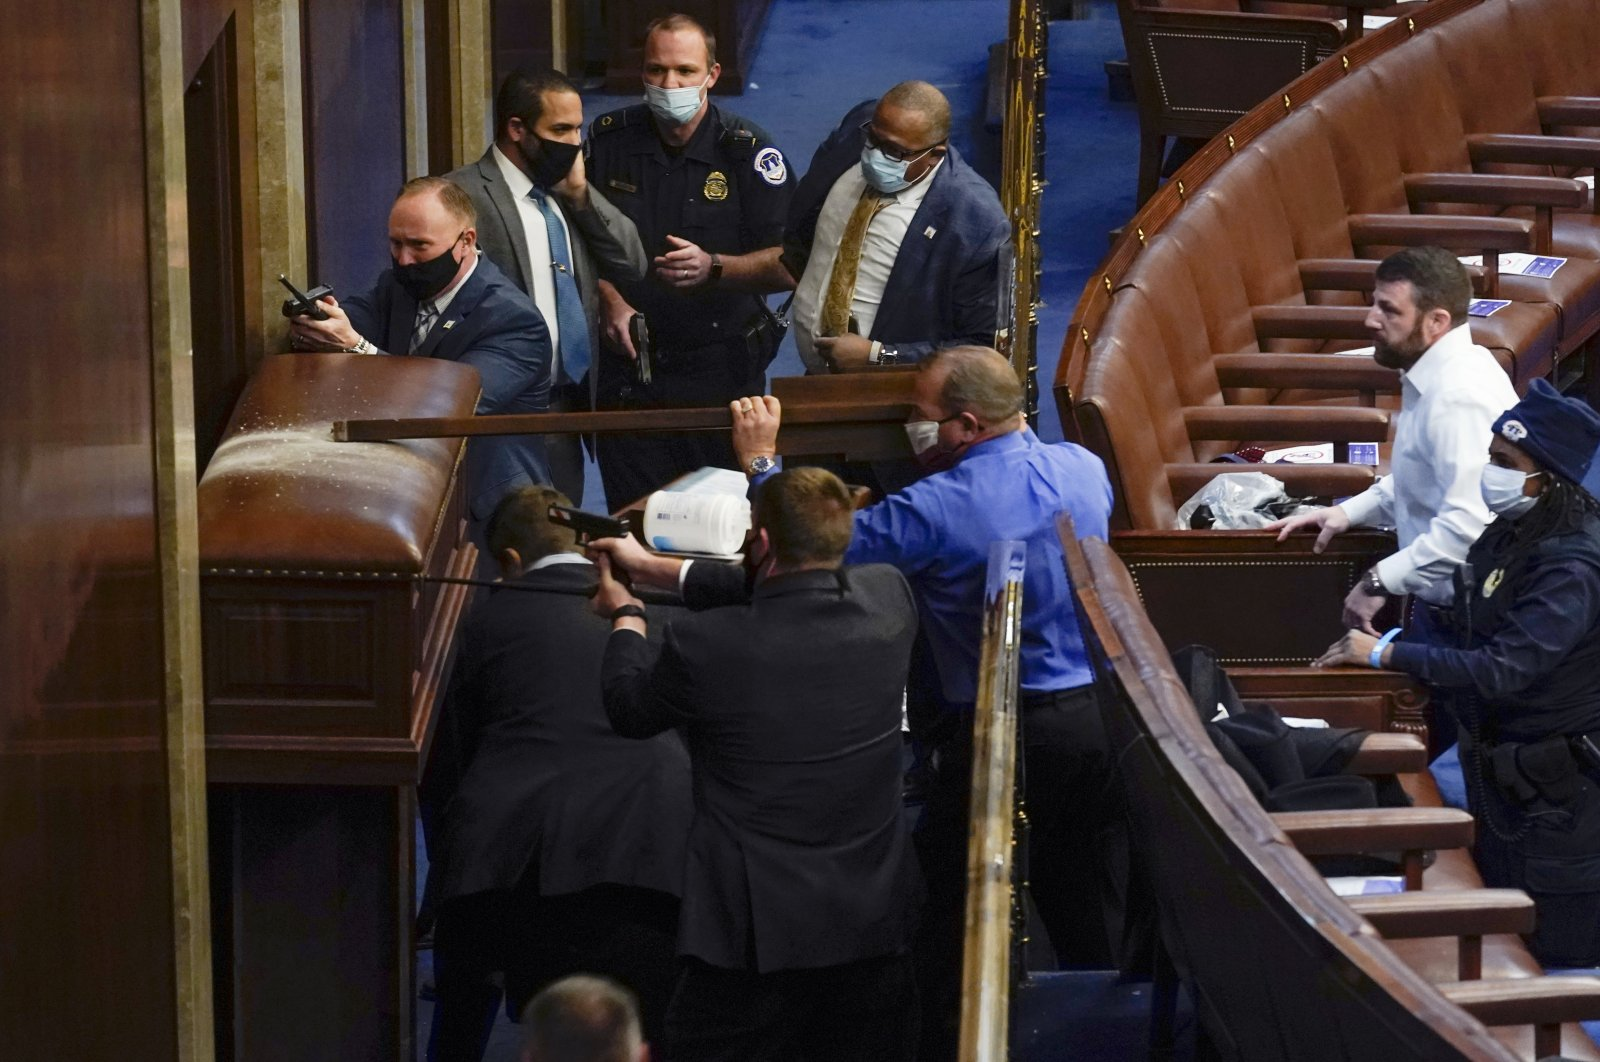 U.S. Capitol Police with guns drawn stand near a barricaded door as protesters try to break into the House Chamber at the U.S. Capitol on Wednesday, Jan. 6, 2021, in Washington. (AP Photo)